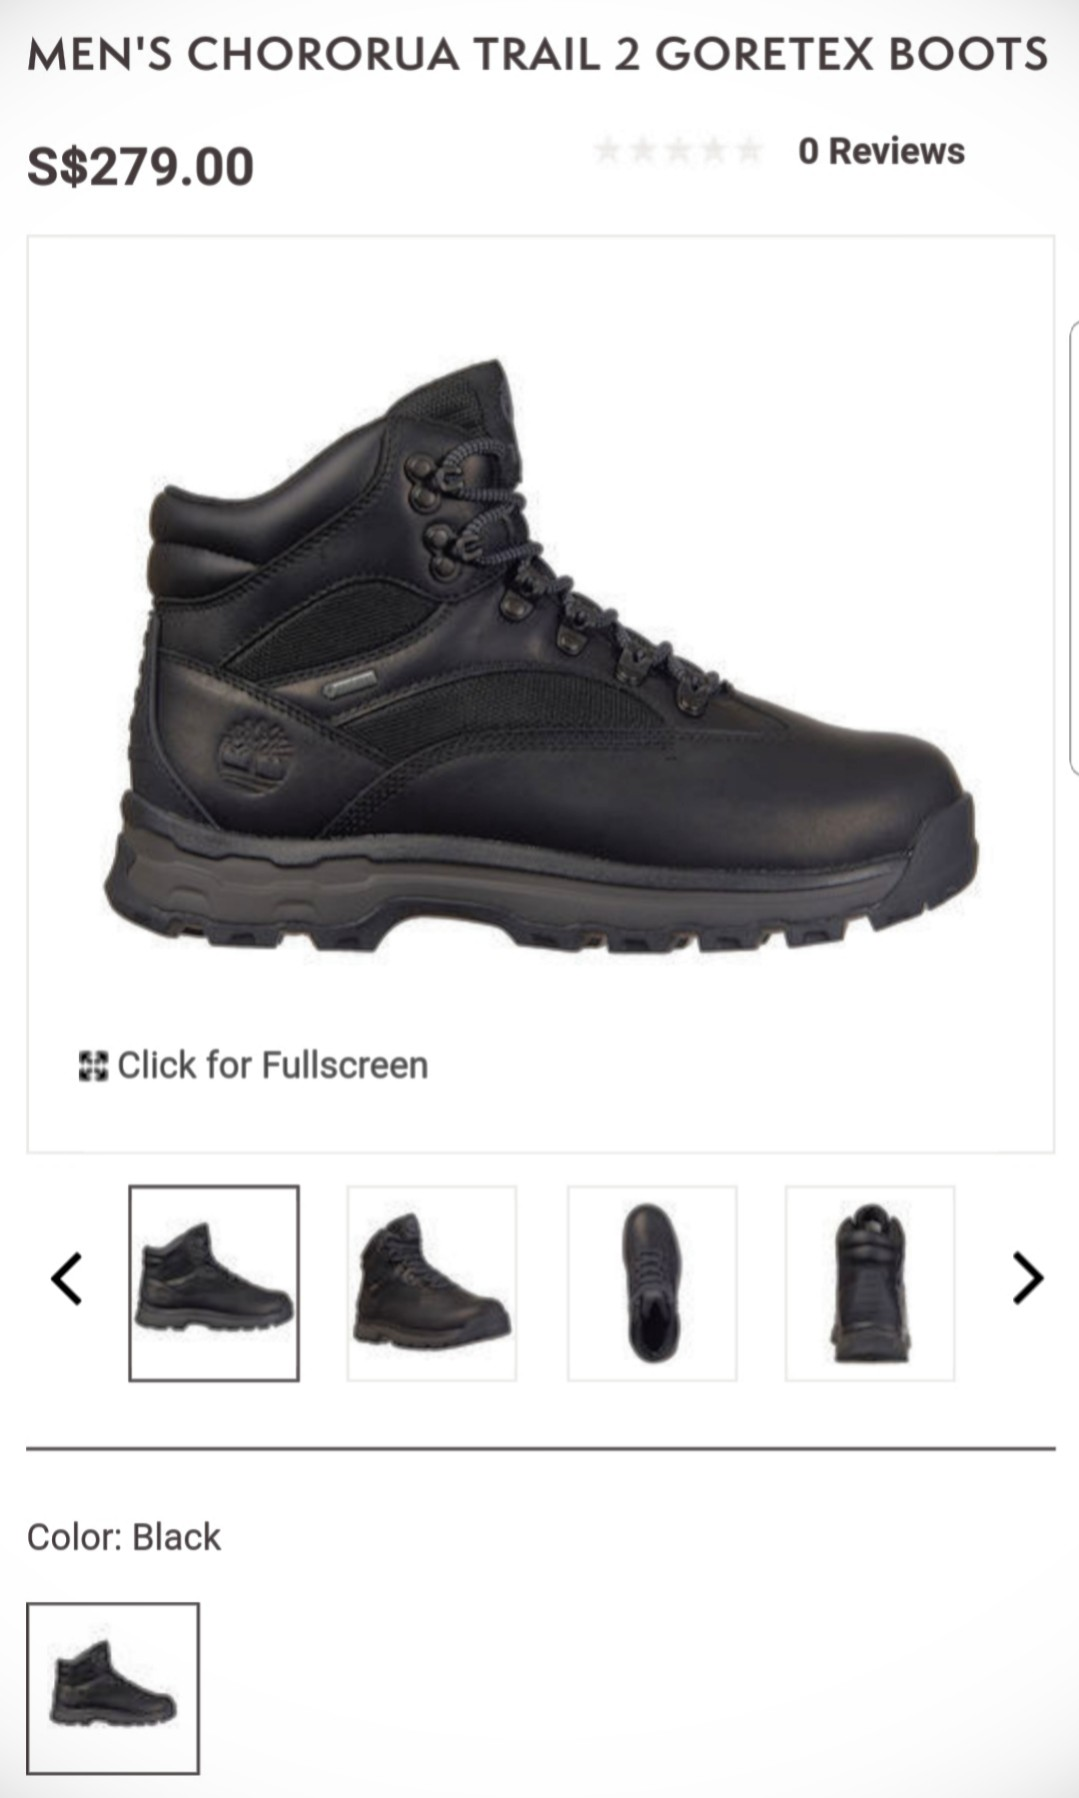 039b86ecdc9c5 Timberland Chorura Trail 2 Gortex Boots Size: US9.5, Men's Fashion, Footwear  on Carousell